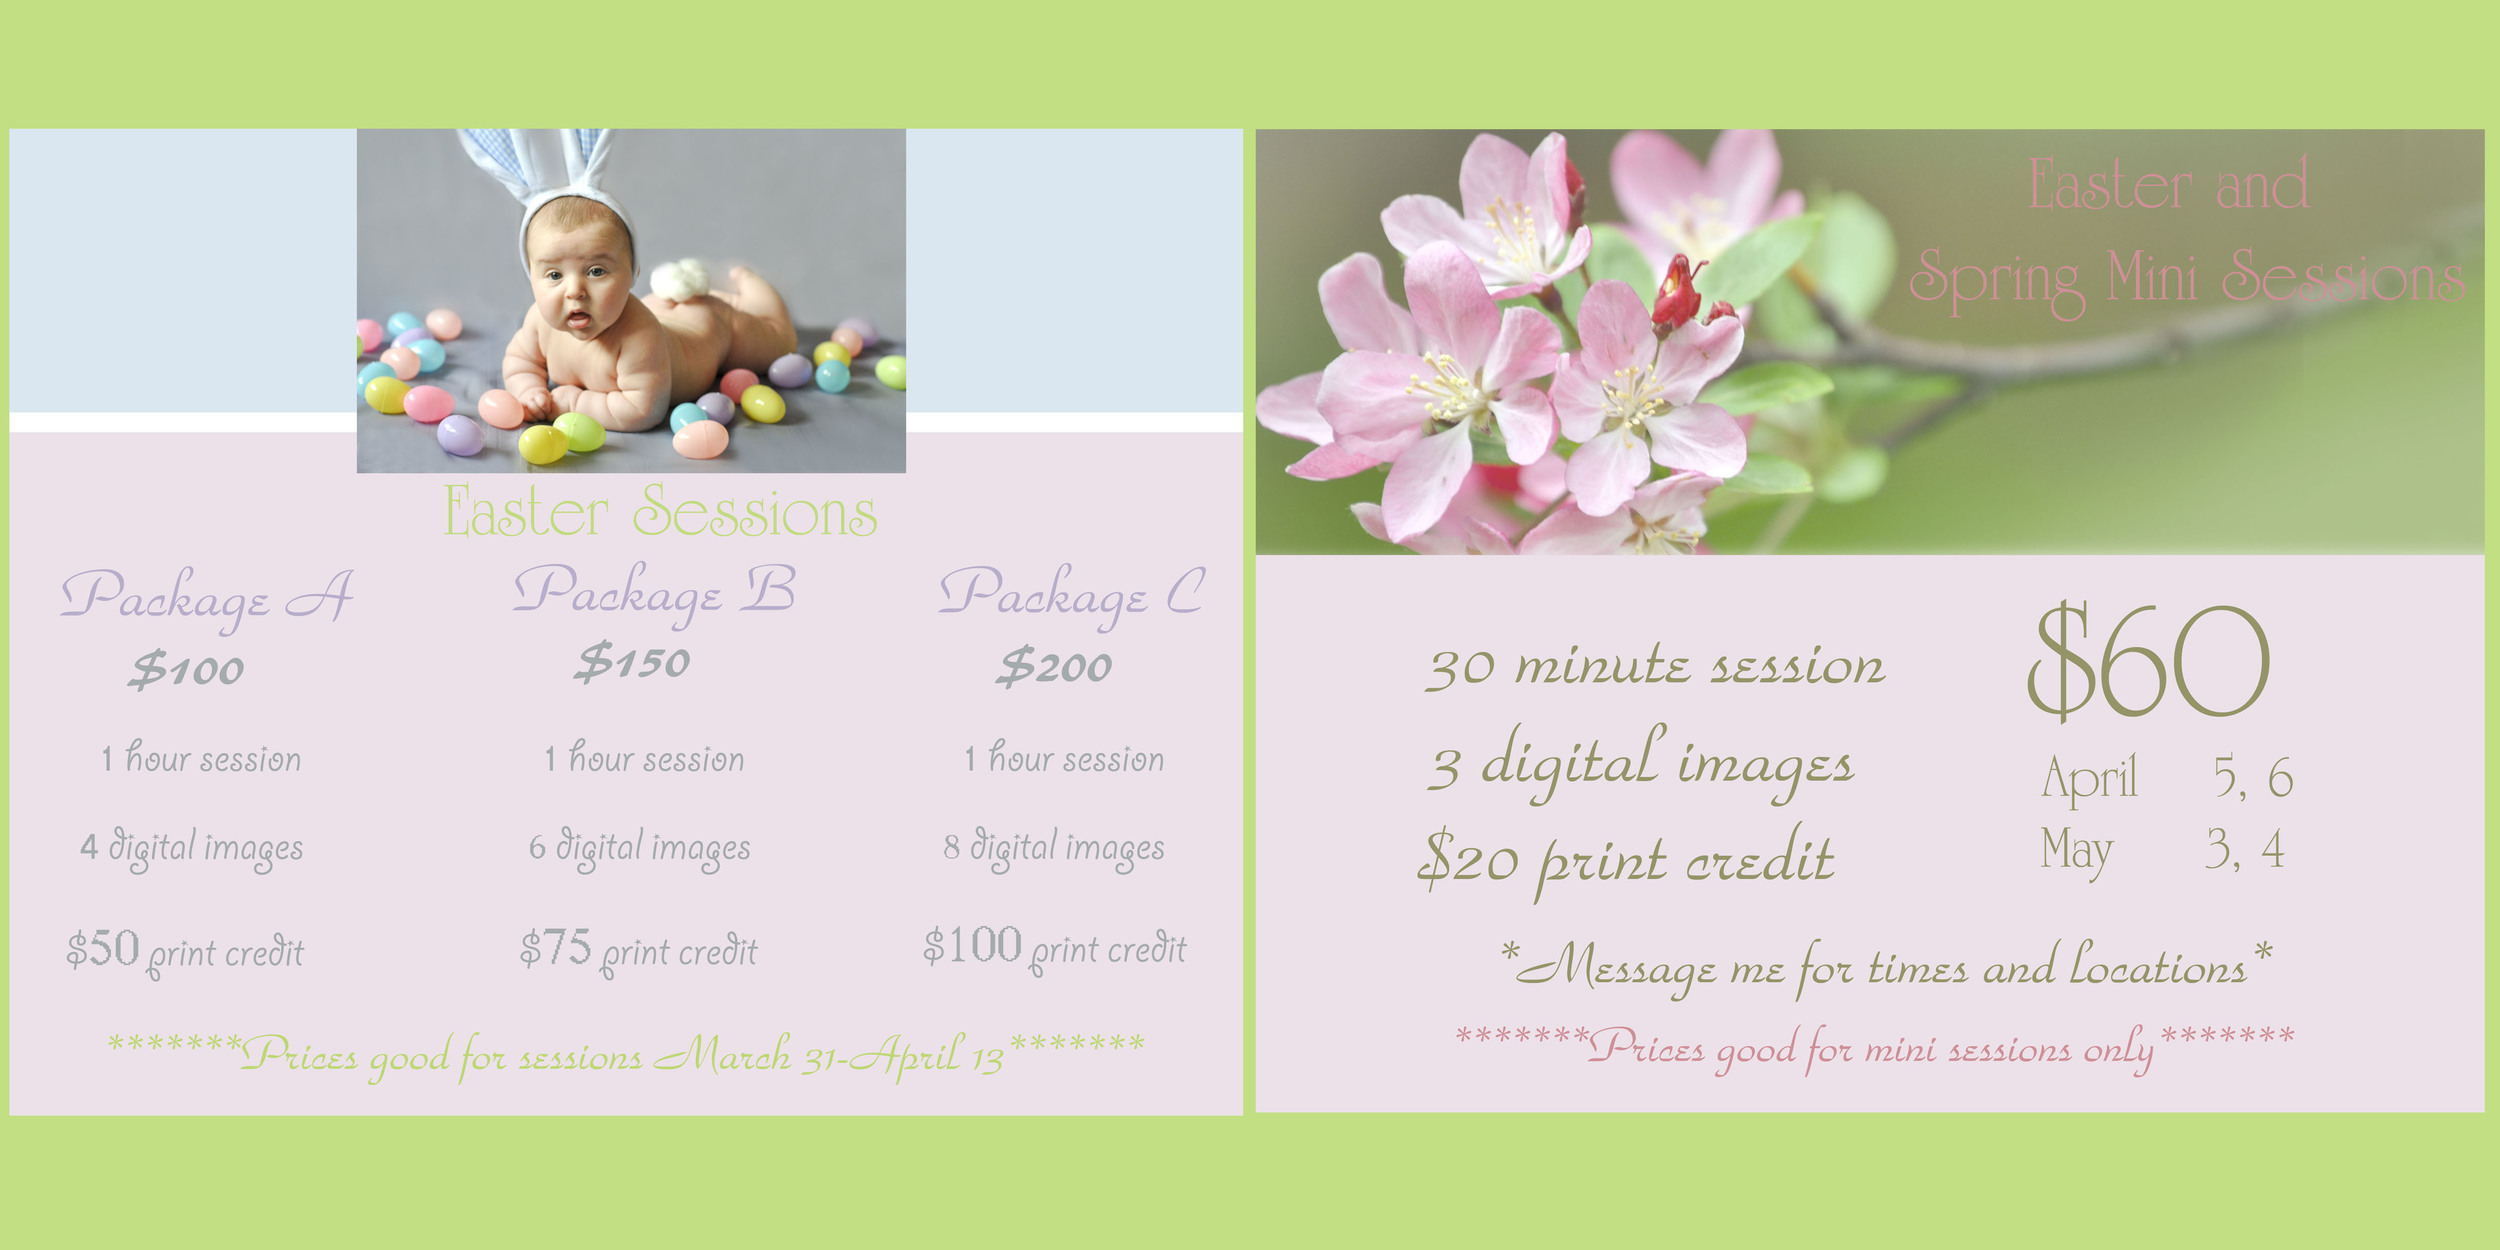 If you have any questions, or would like to schedule a session, please visit my Contact page!